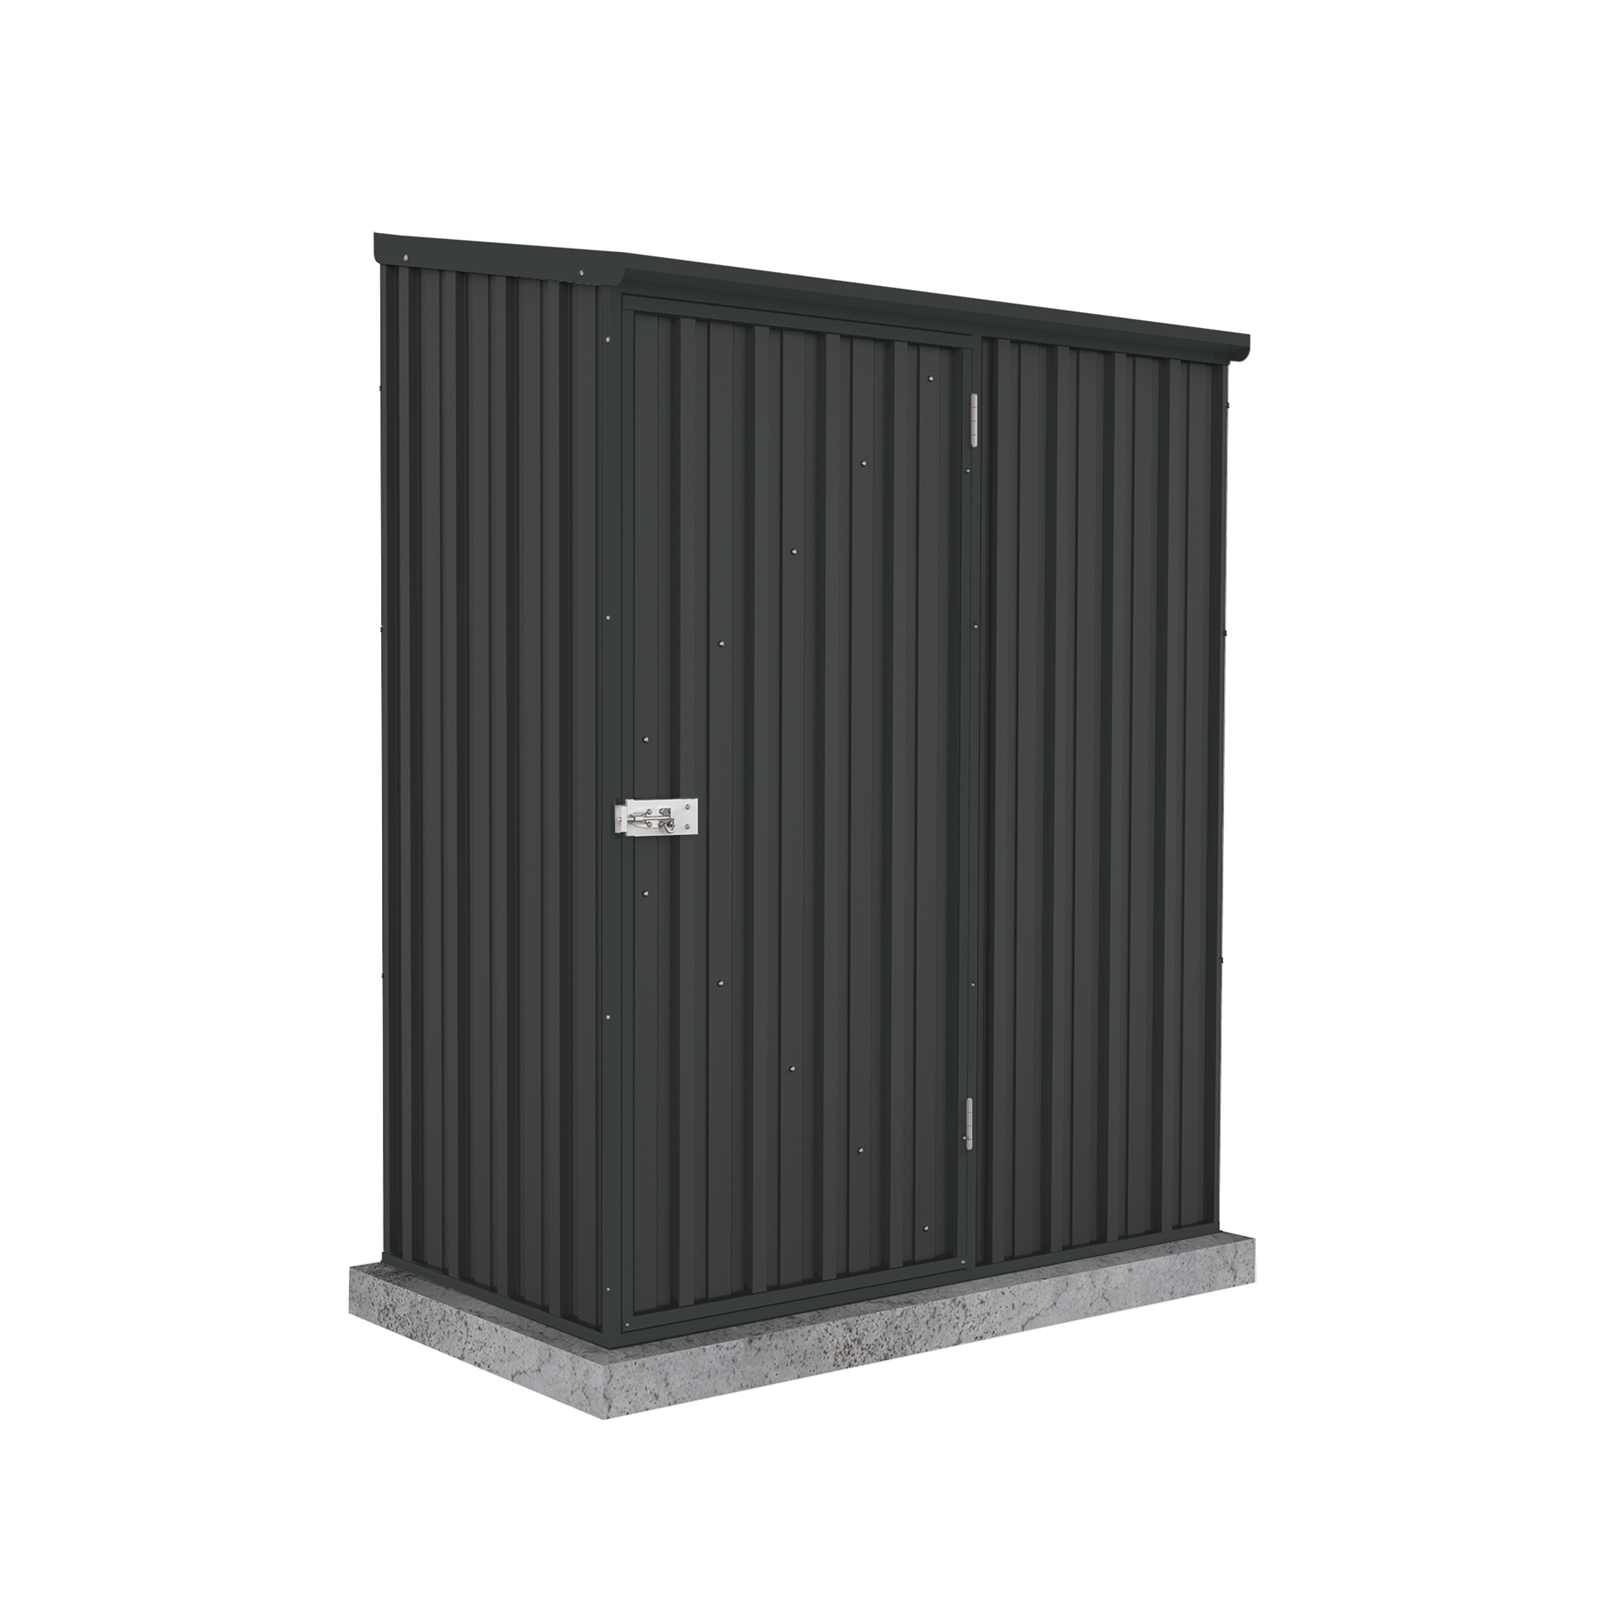 Absco Sheds 1.52 x 0.78 x 1.95m Space Saver Single Door Garden Shed - Monument